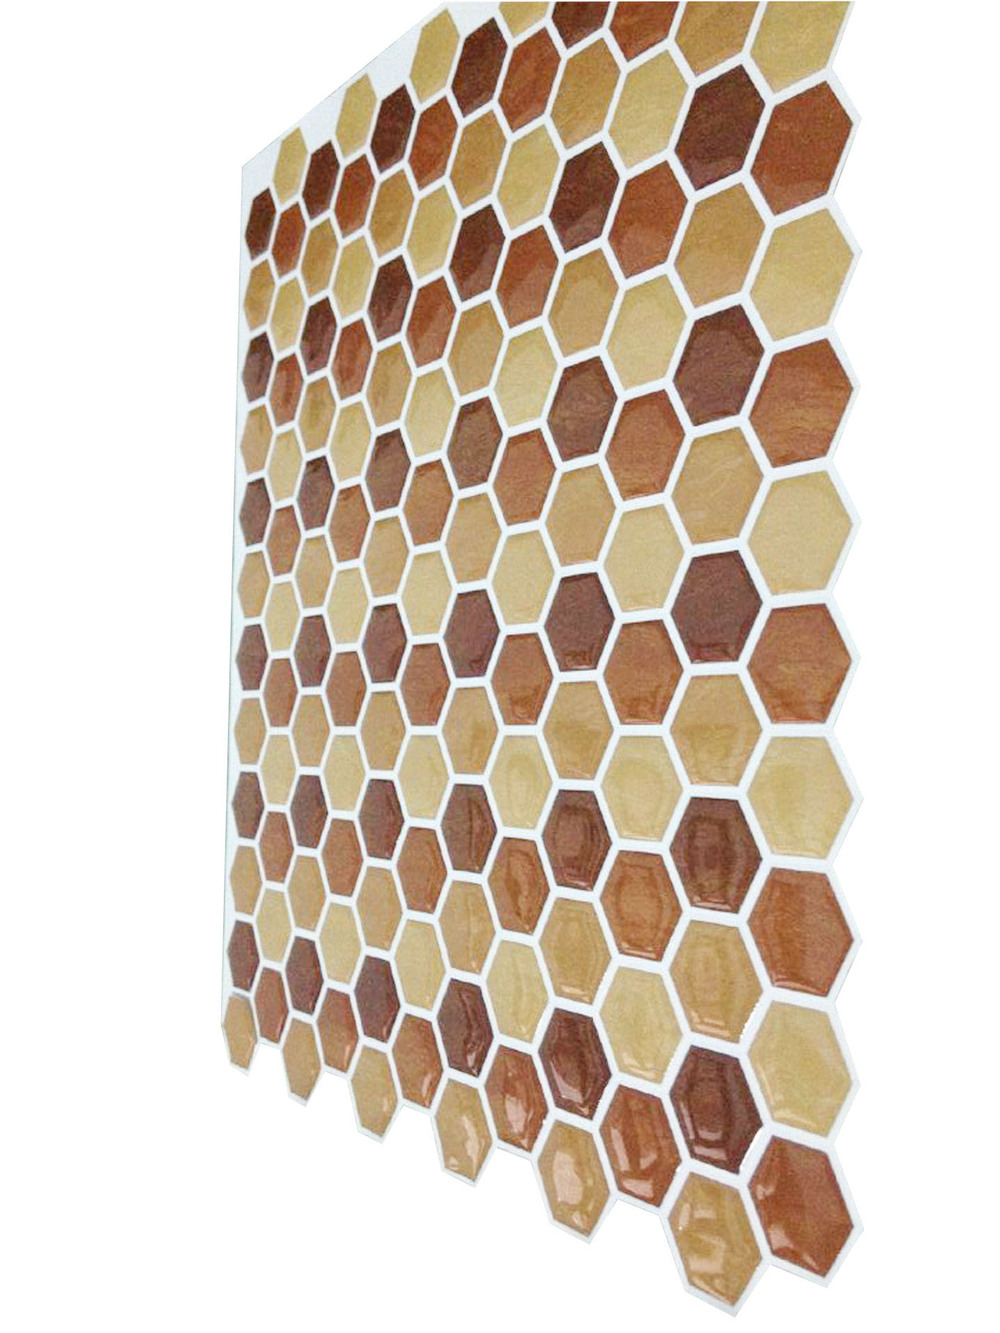 Popular peel and stick tile buy cheap peel and stick tile for 3d peel and stick wallpaper